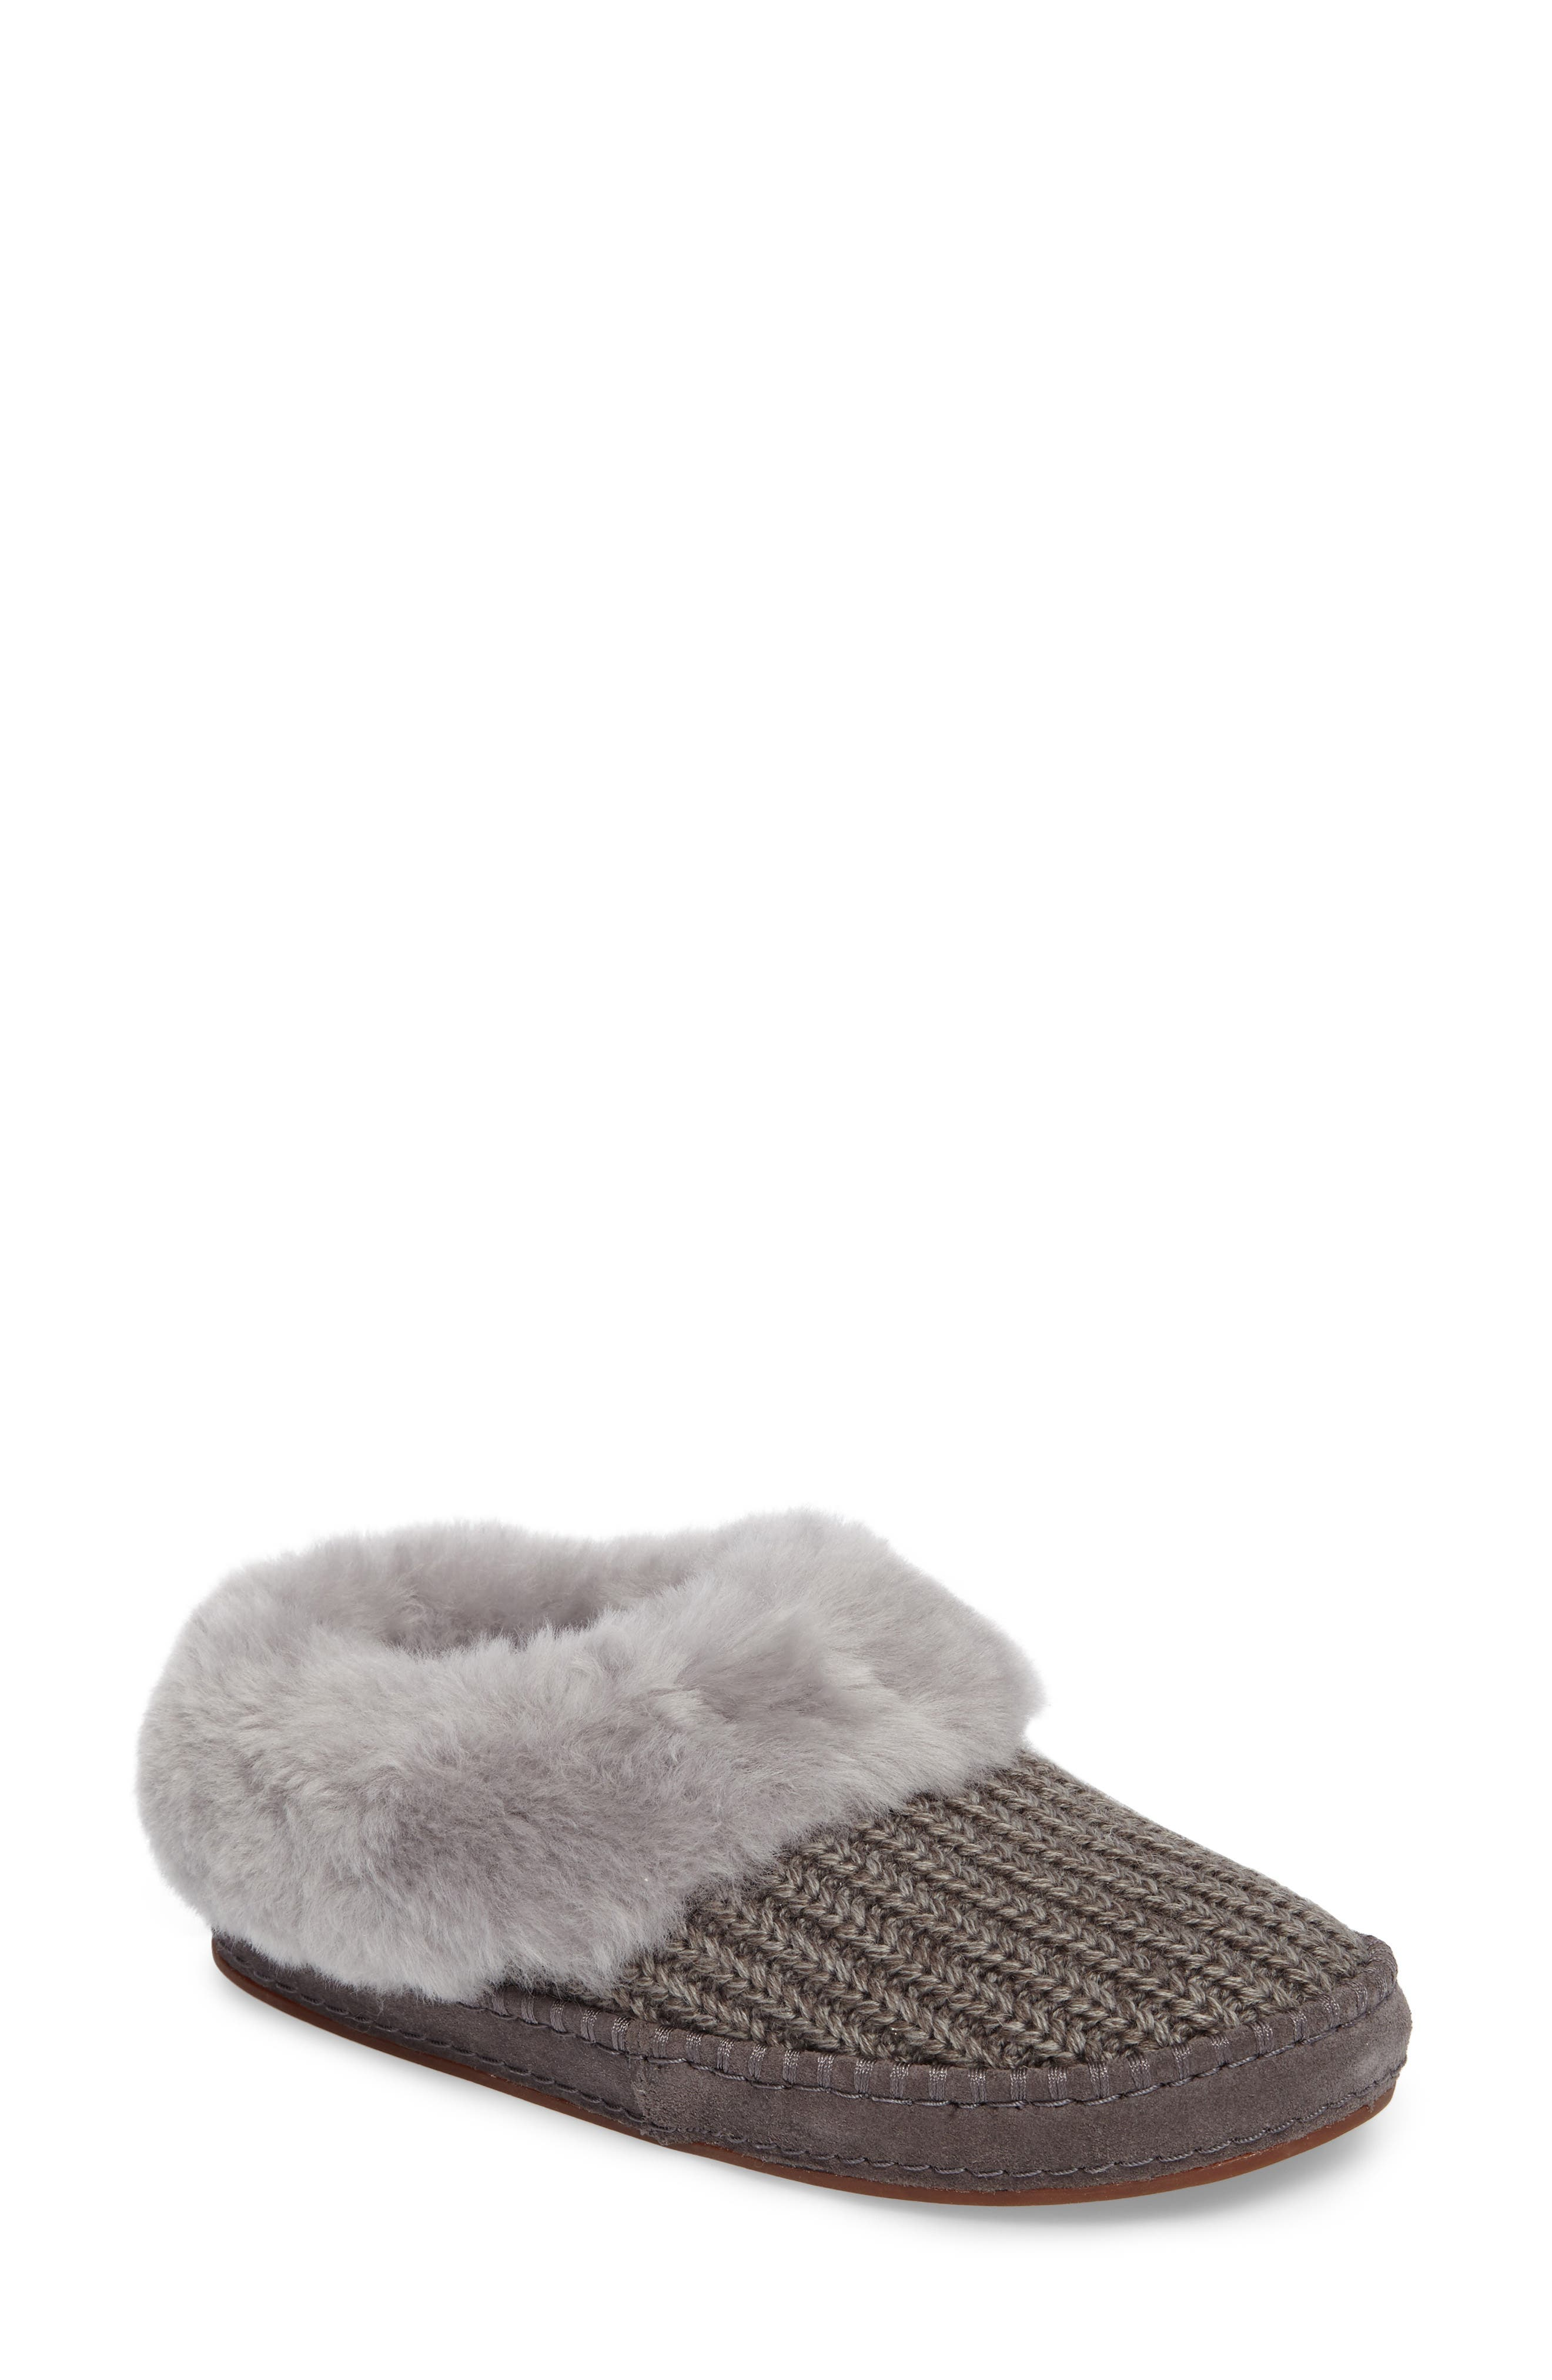 Wrin Rib-Knit & Genuine Shearling Slipper,                         Main,                         color, 020